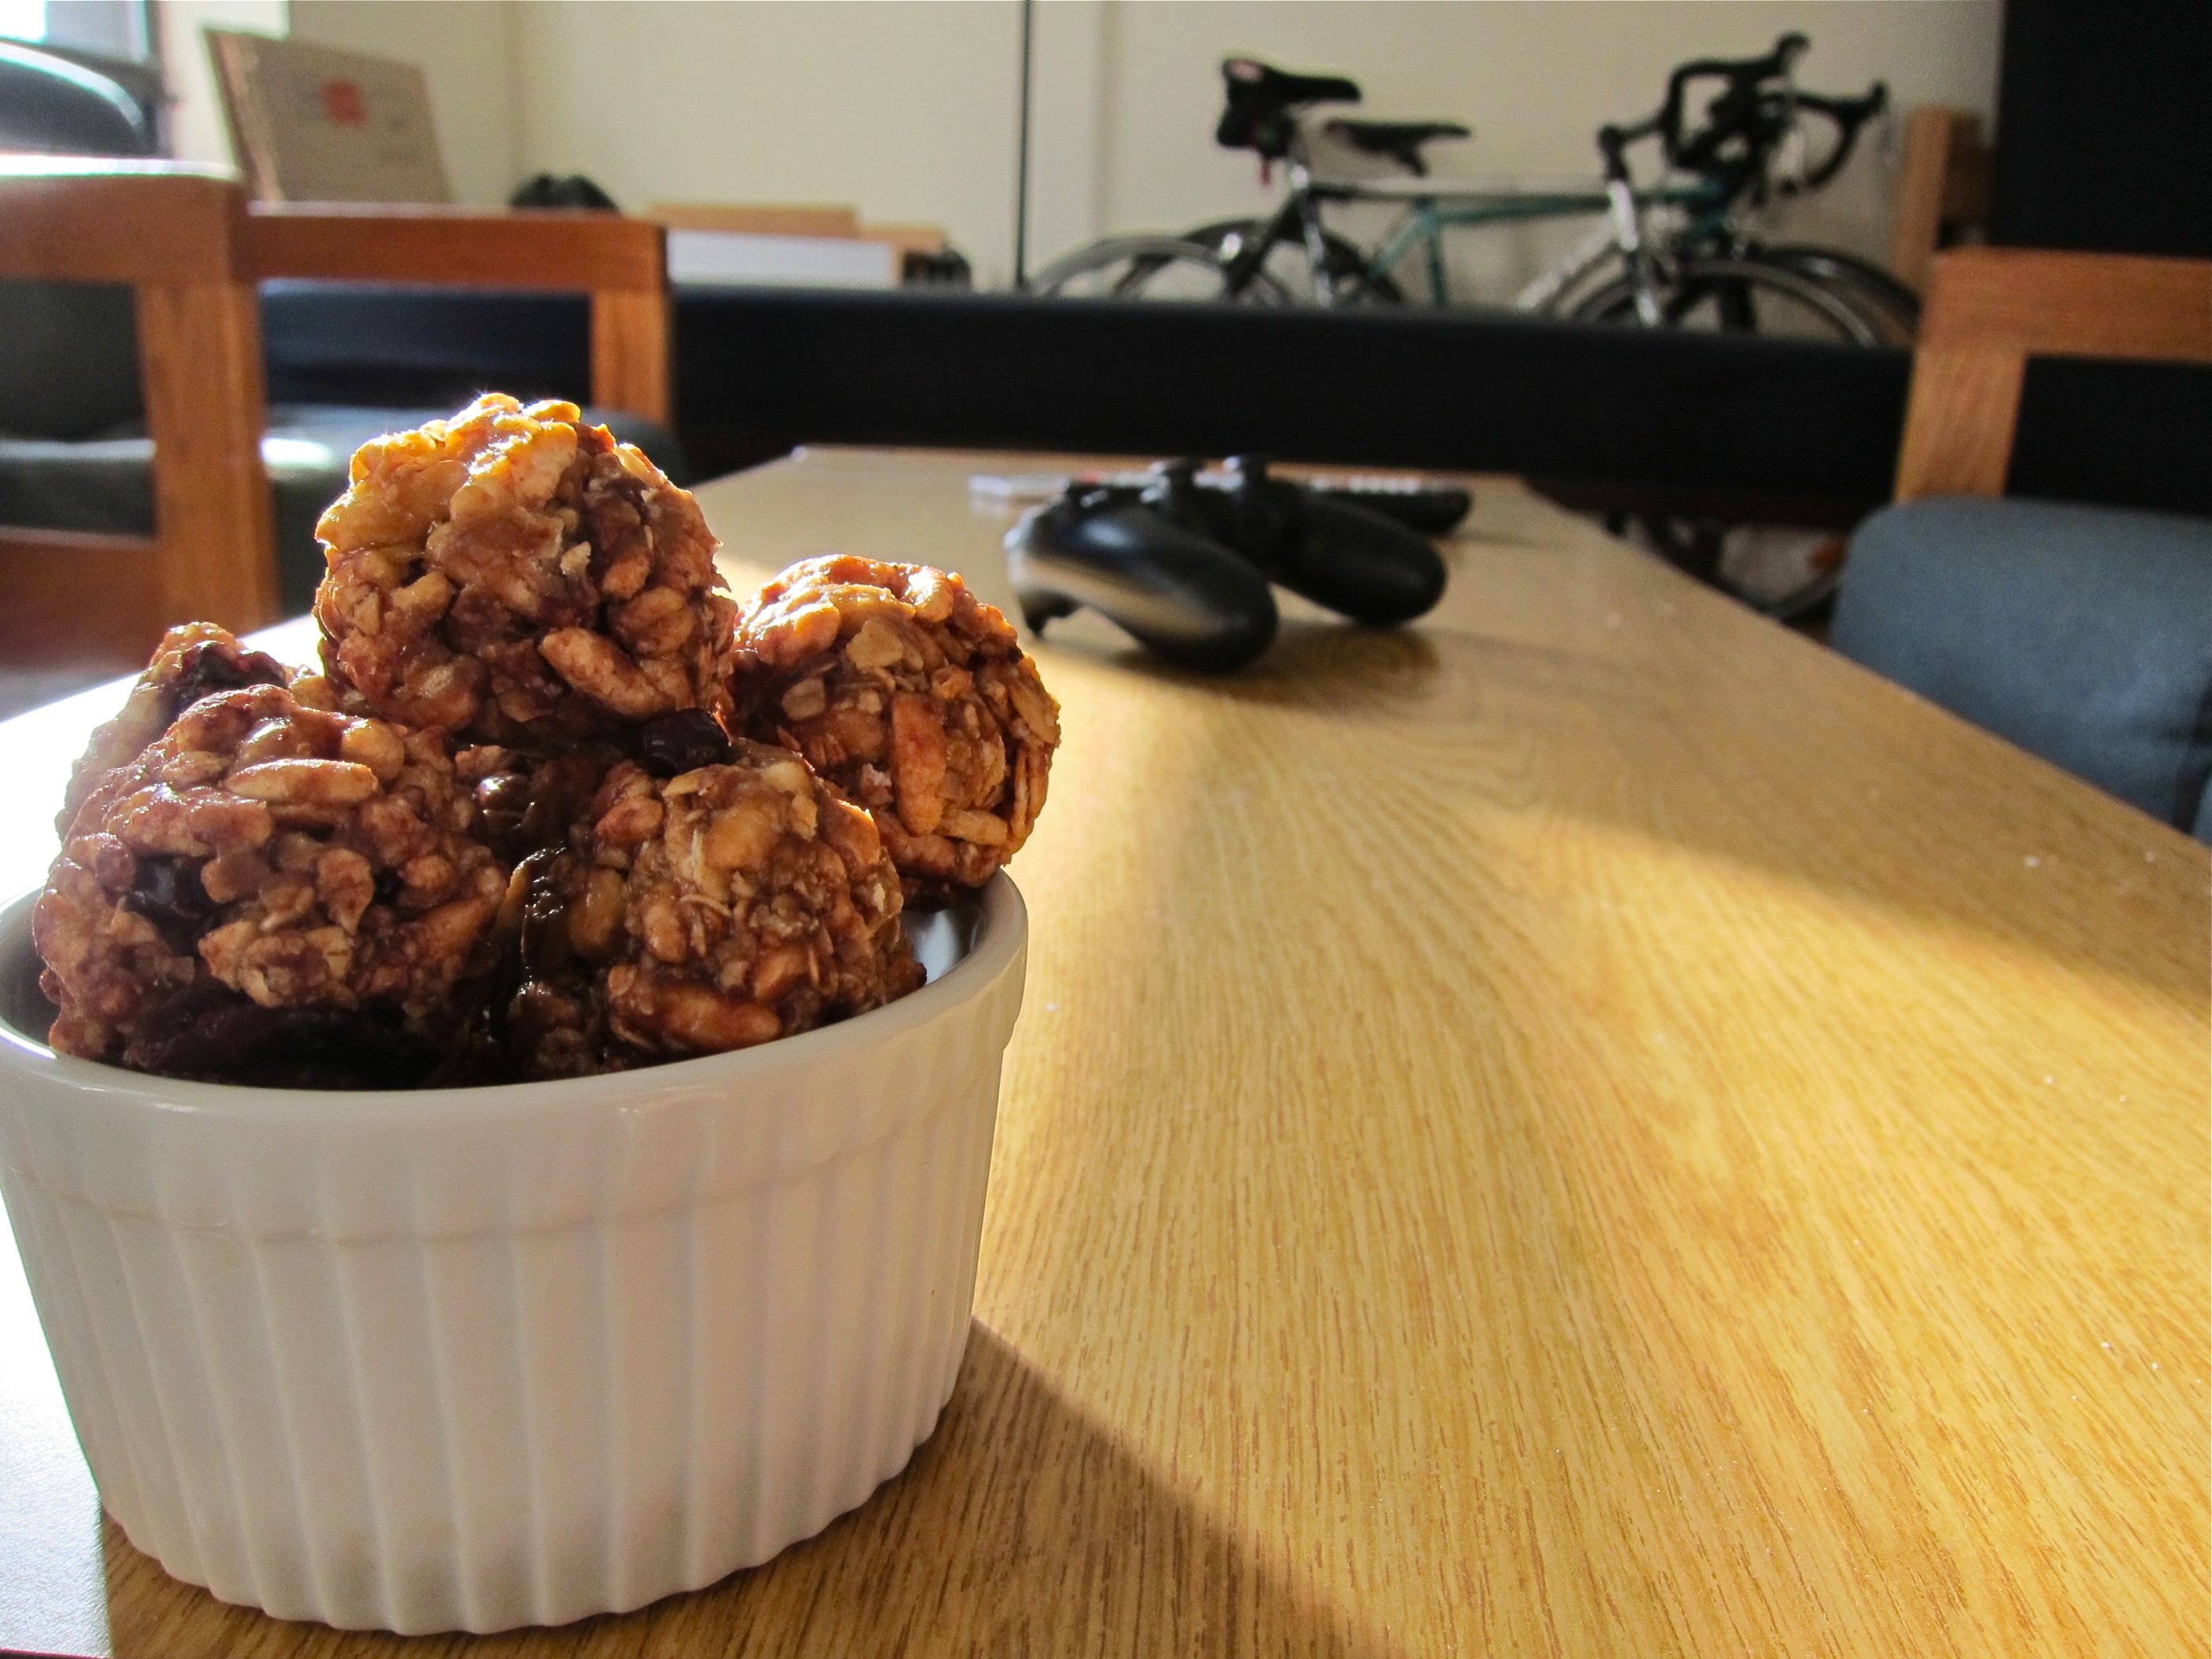 Homemade Snack: The Weelicious Chewy Granola Balls   Figsinmybelly